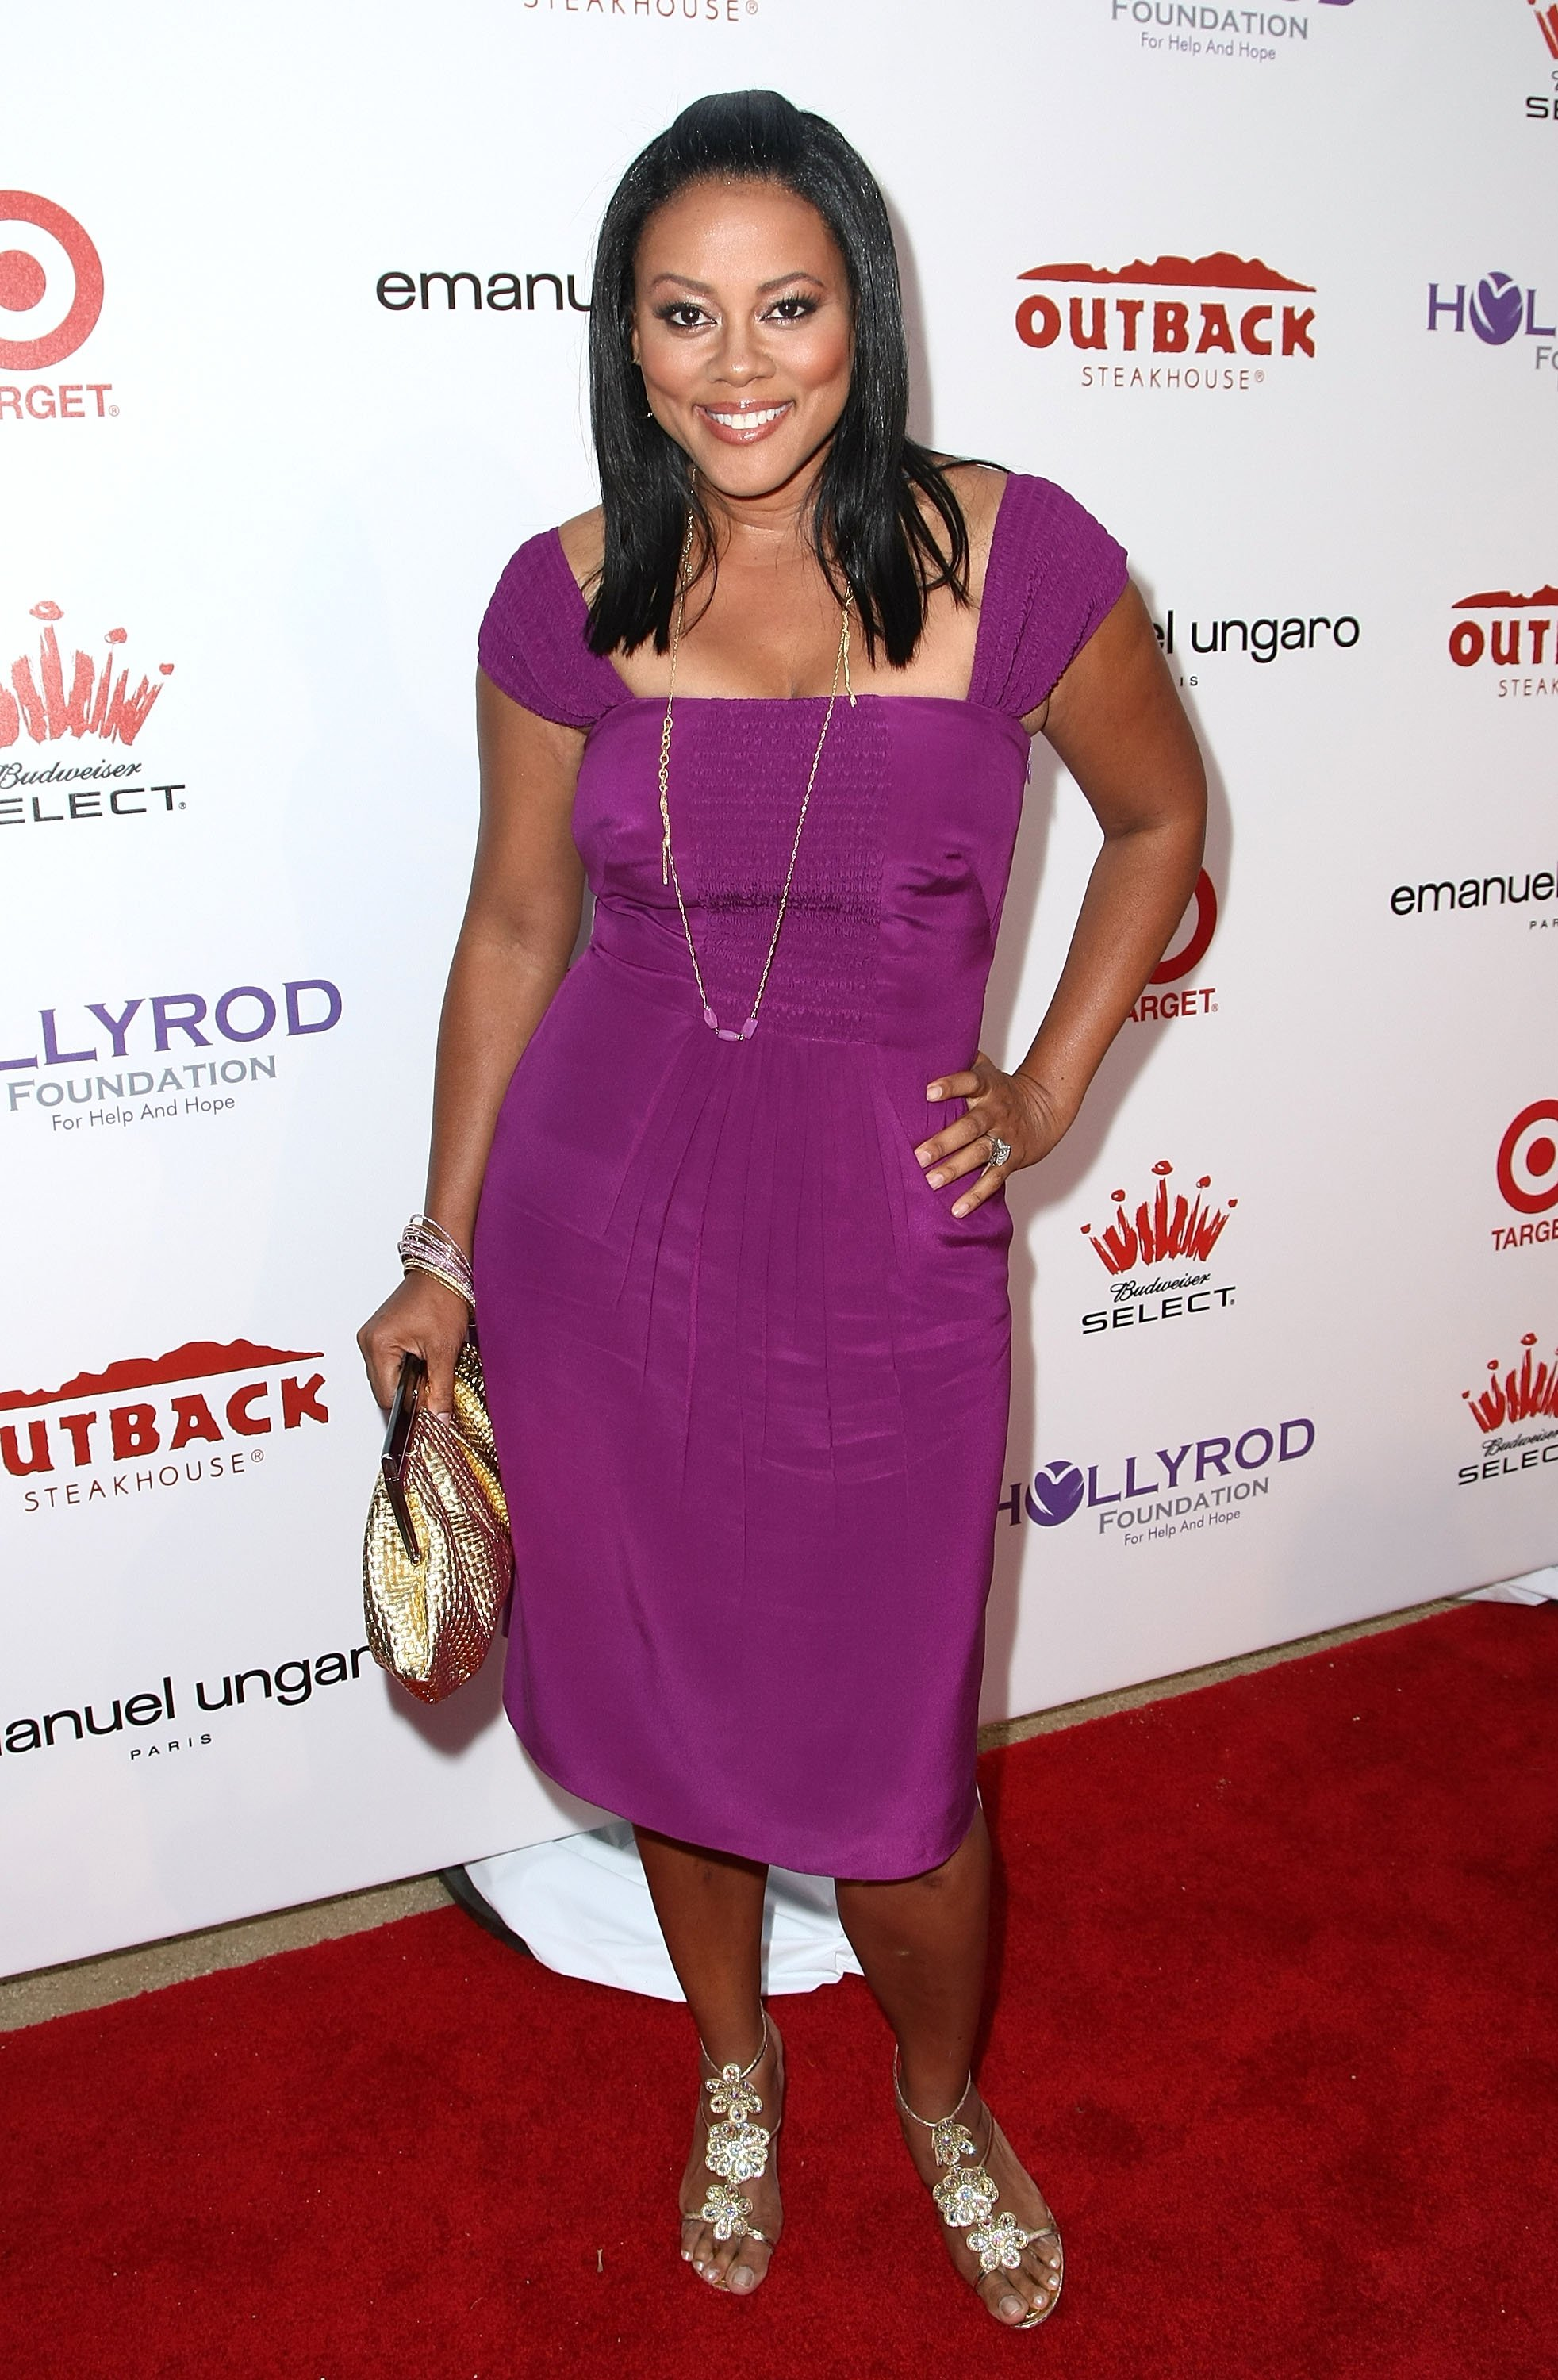 Image Credits: Getty Images / Alberto E. Rodriguez | Actress Lela Rochon arrives at the 10th Annual DesignCure Benefit for the HollyRod Foundation held at a private estate on July 19, 2008 in Malibu, California.